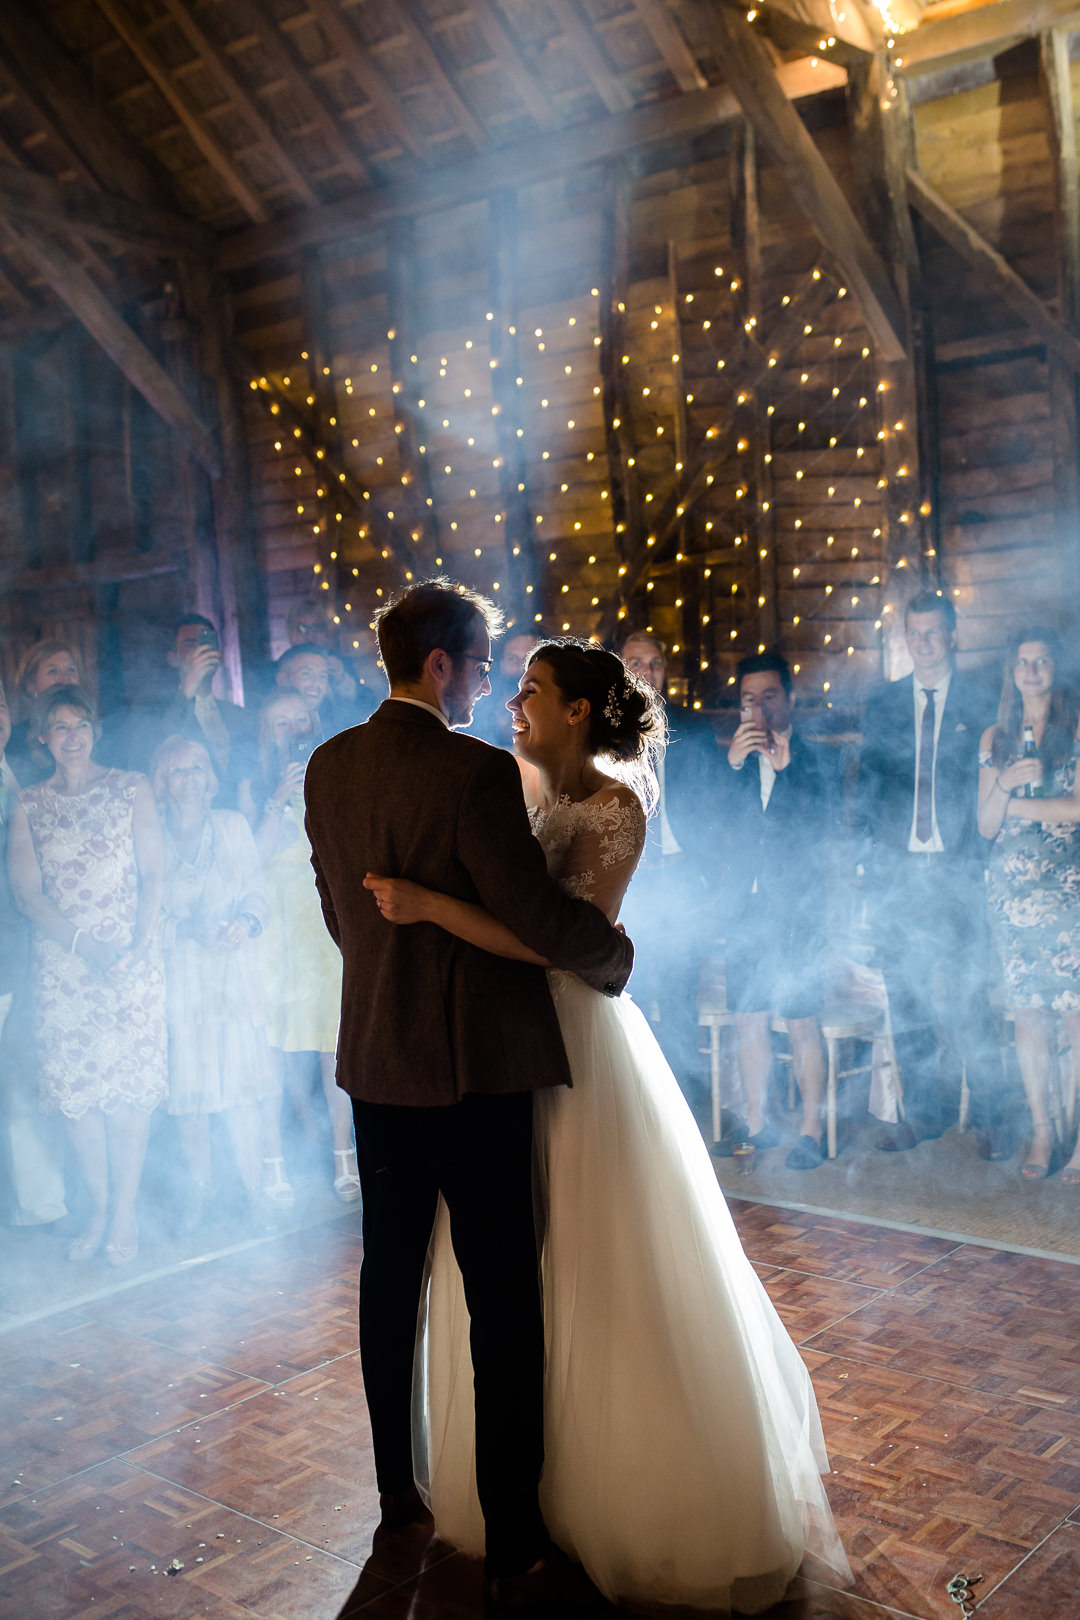 bride and groom having their first dance with smoke machine and fairy lights in a barn